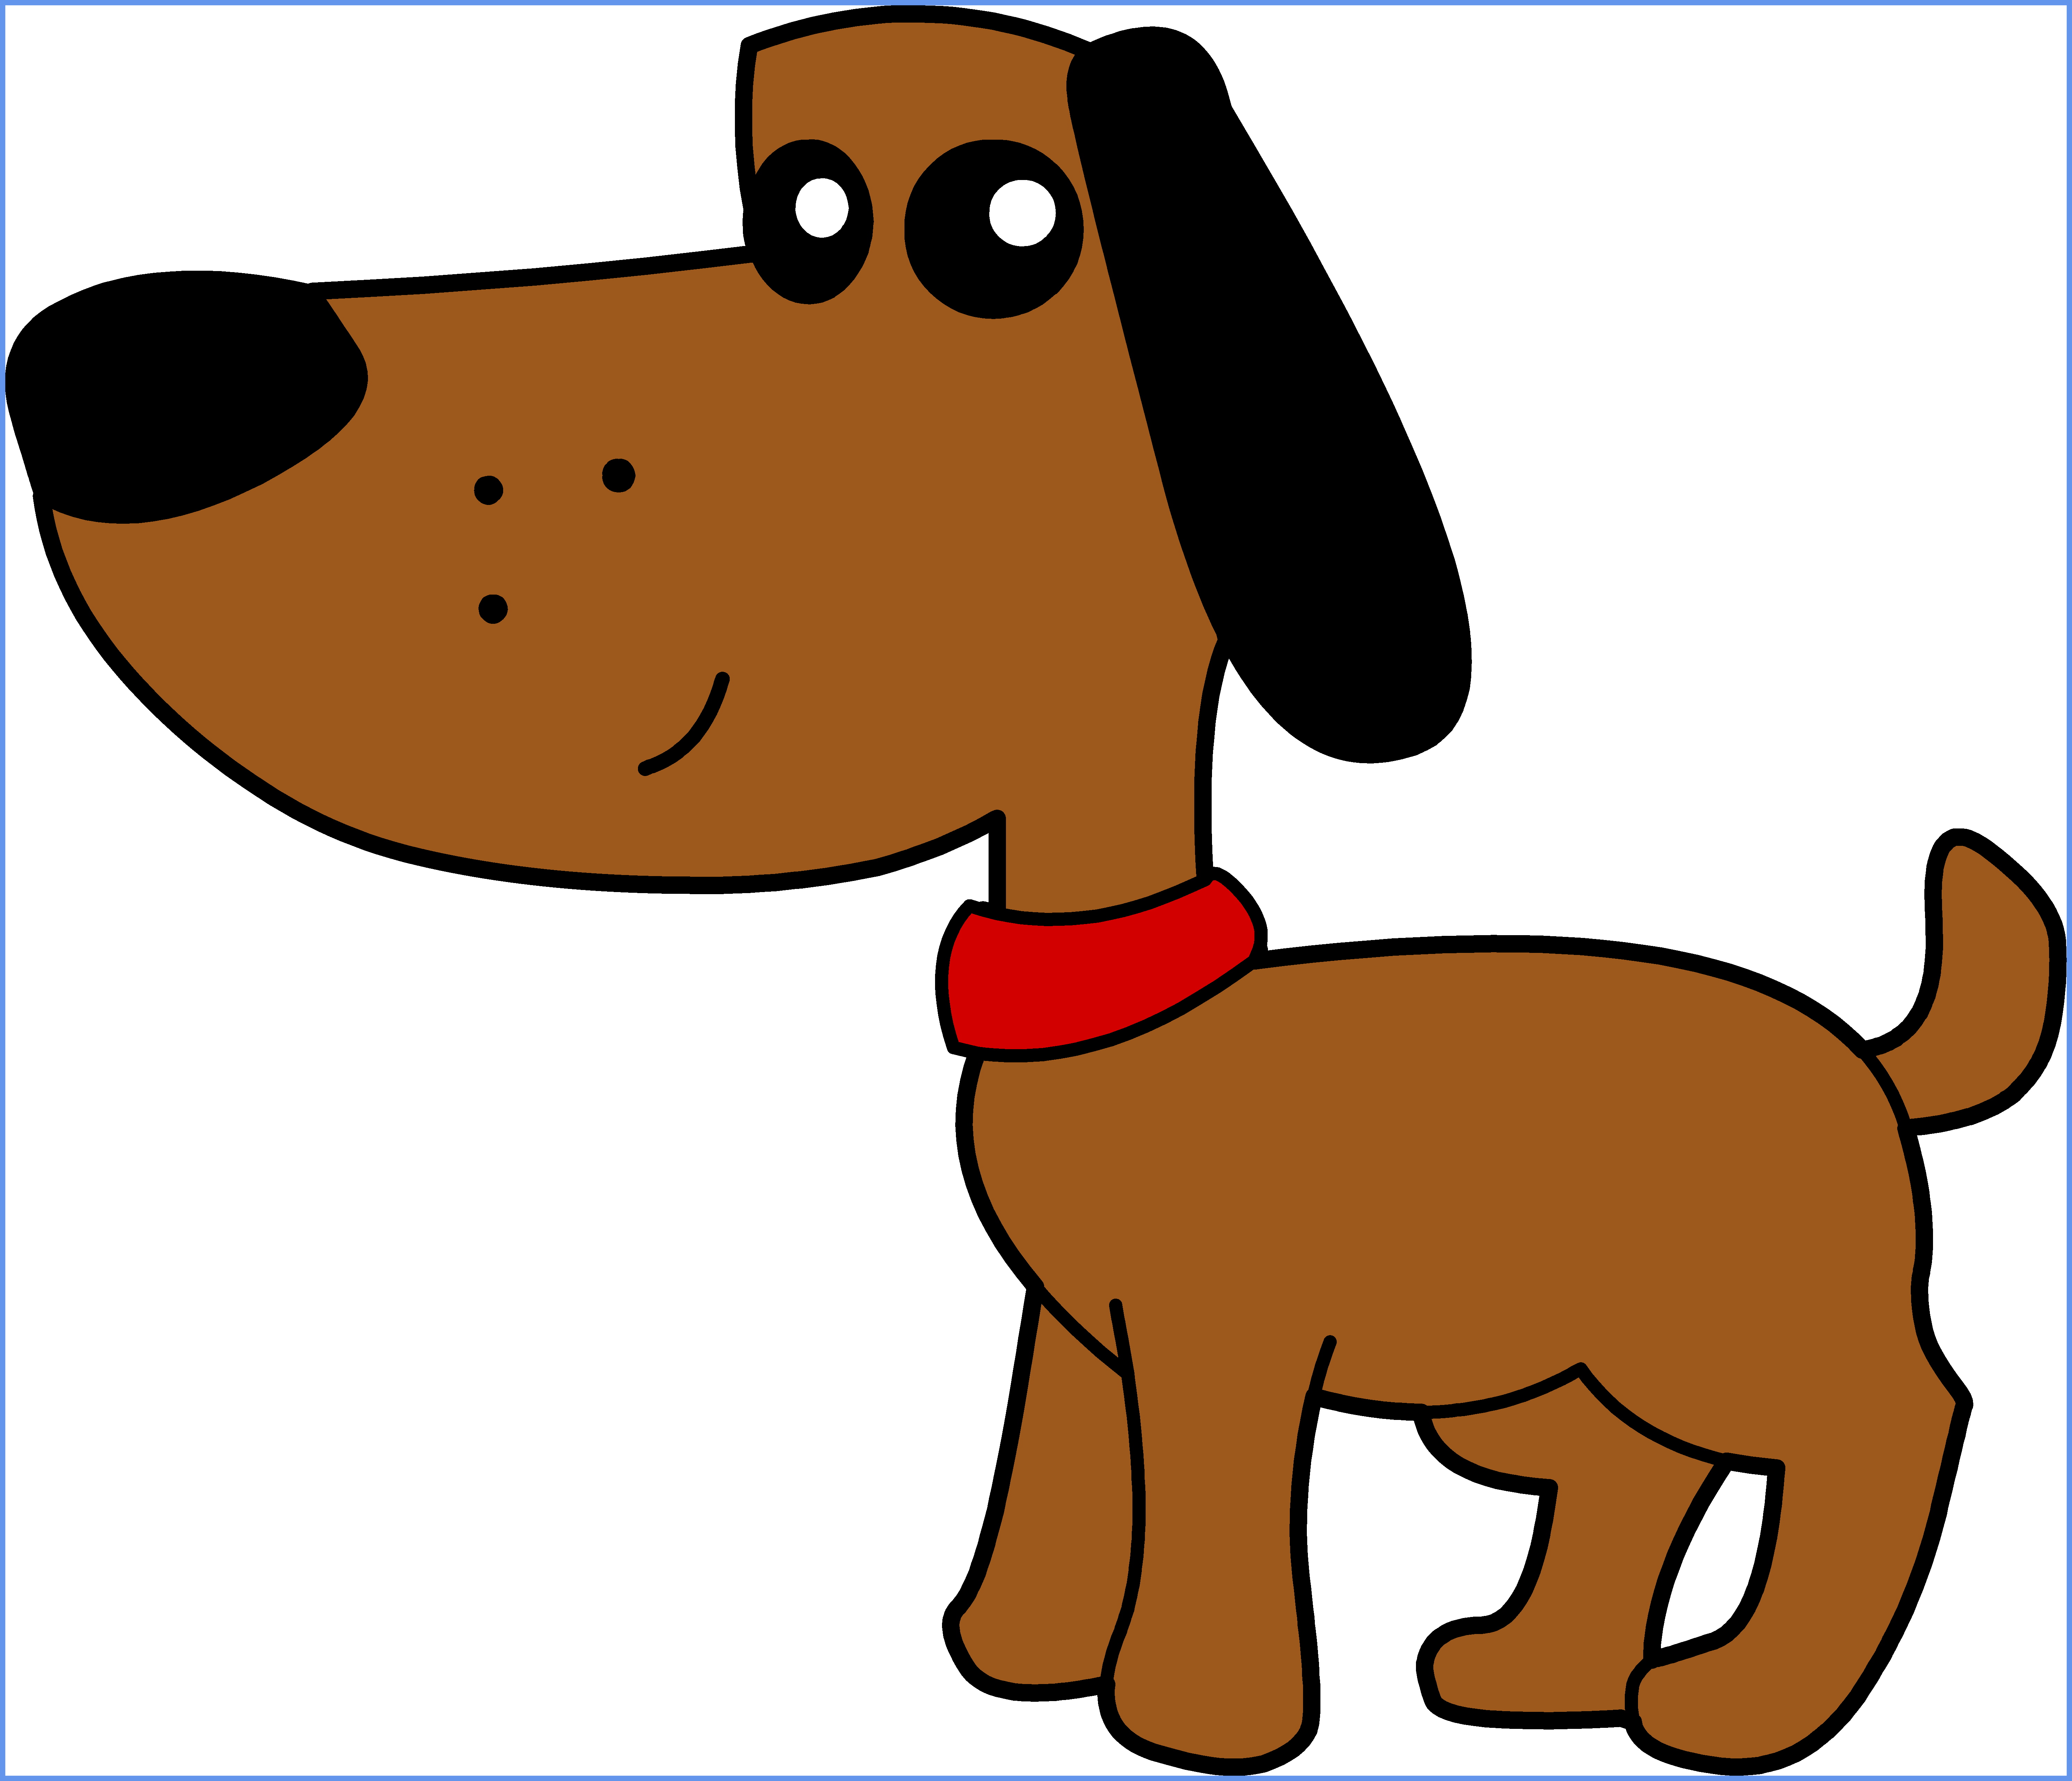 clip library library Clipart Cute Dogs at GetDrawings